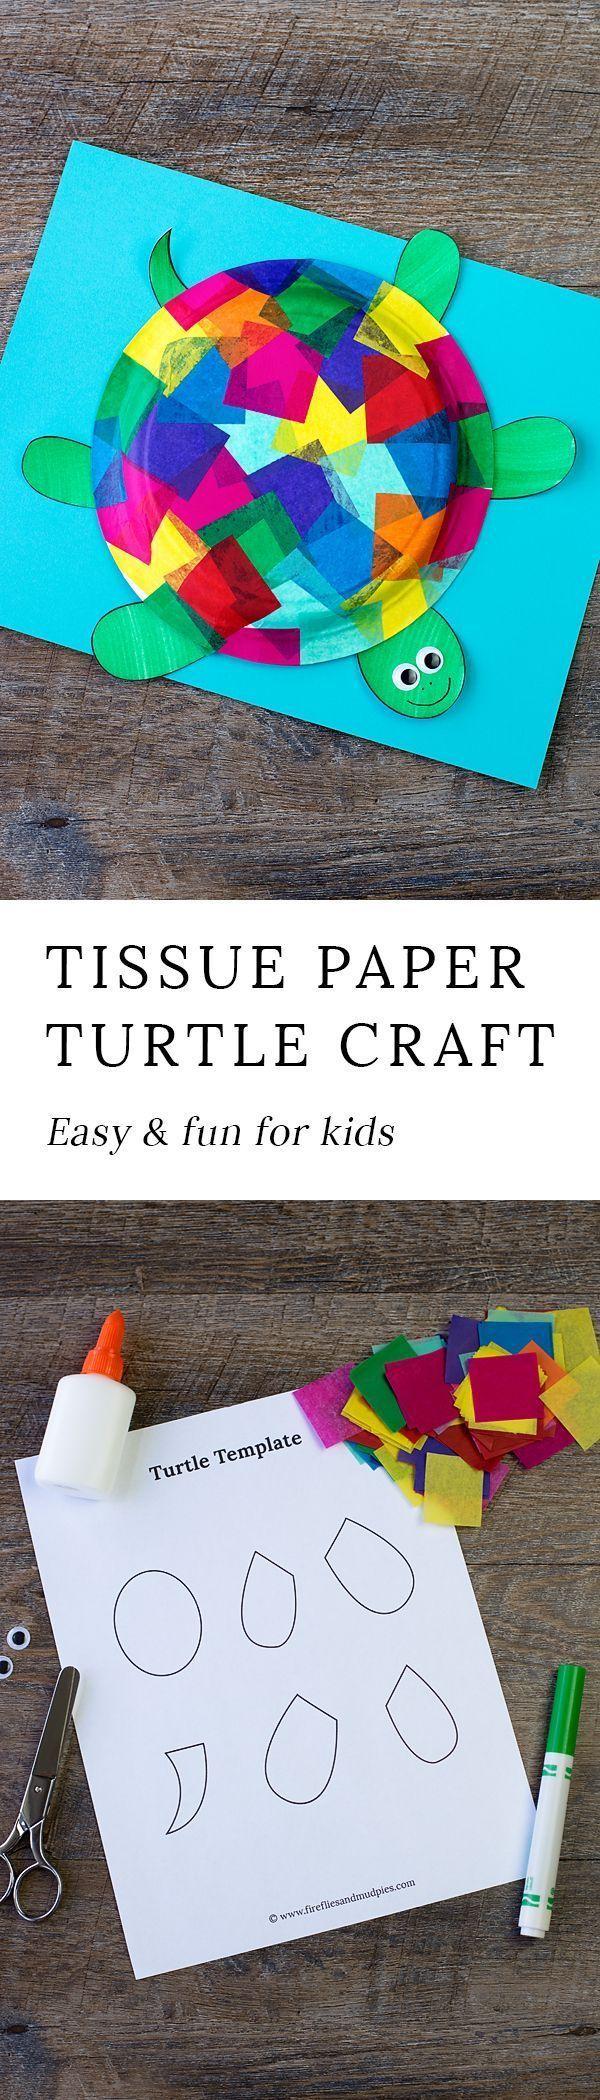 This easy and fun Tissue Paper and Paper Plate Turtle craft includes